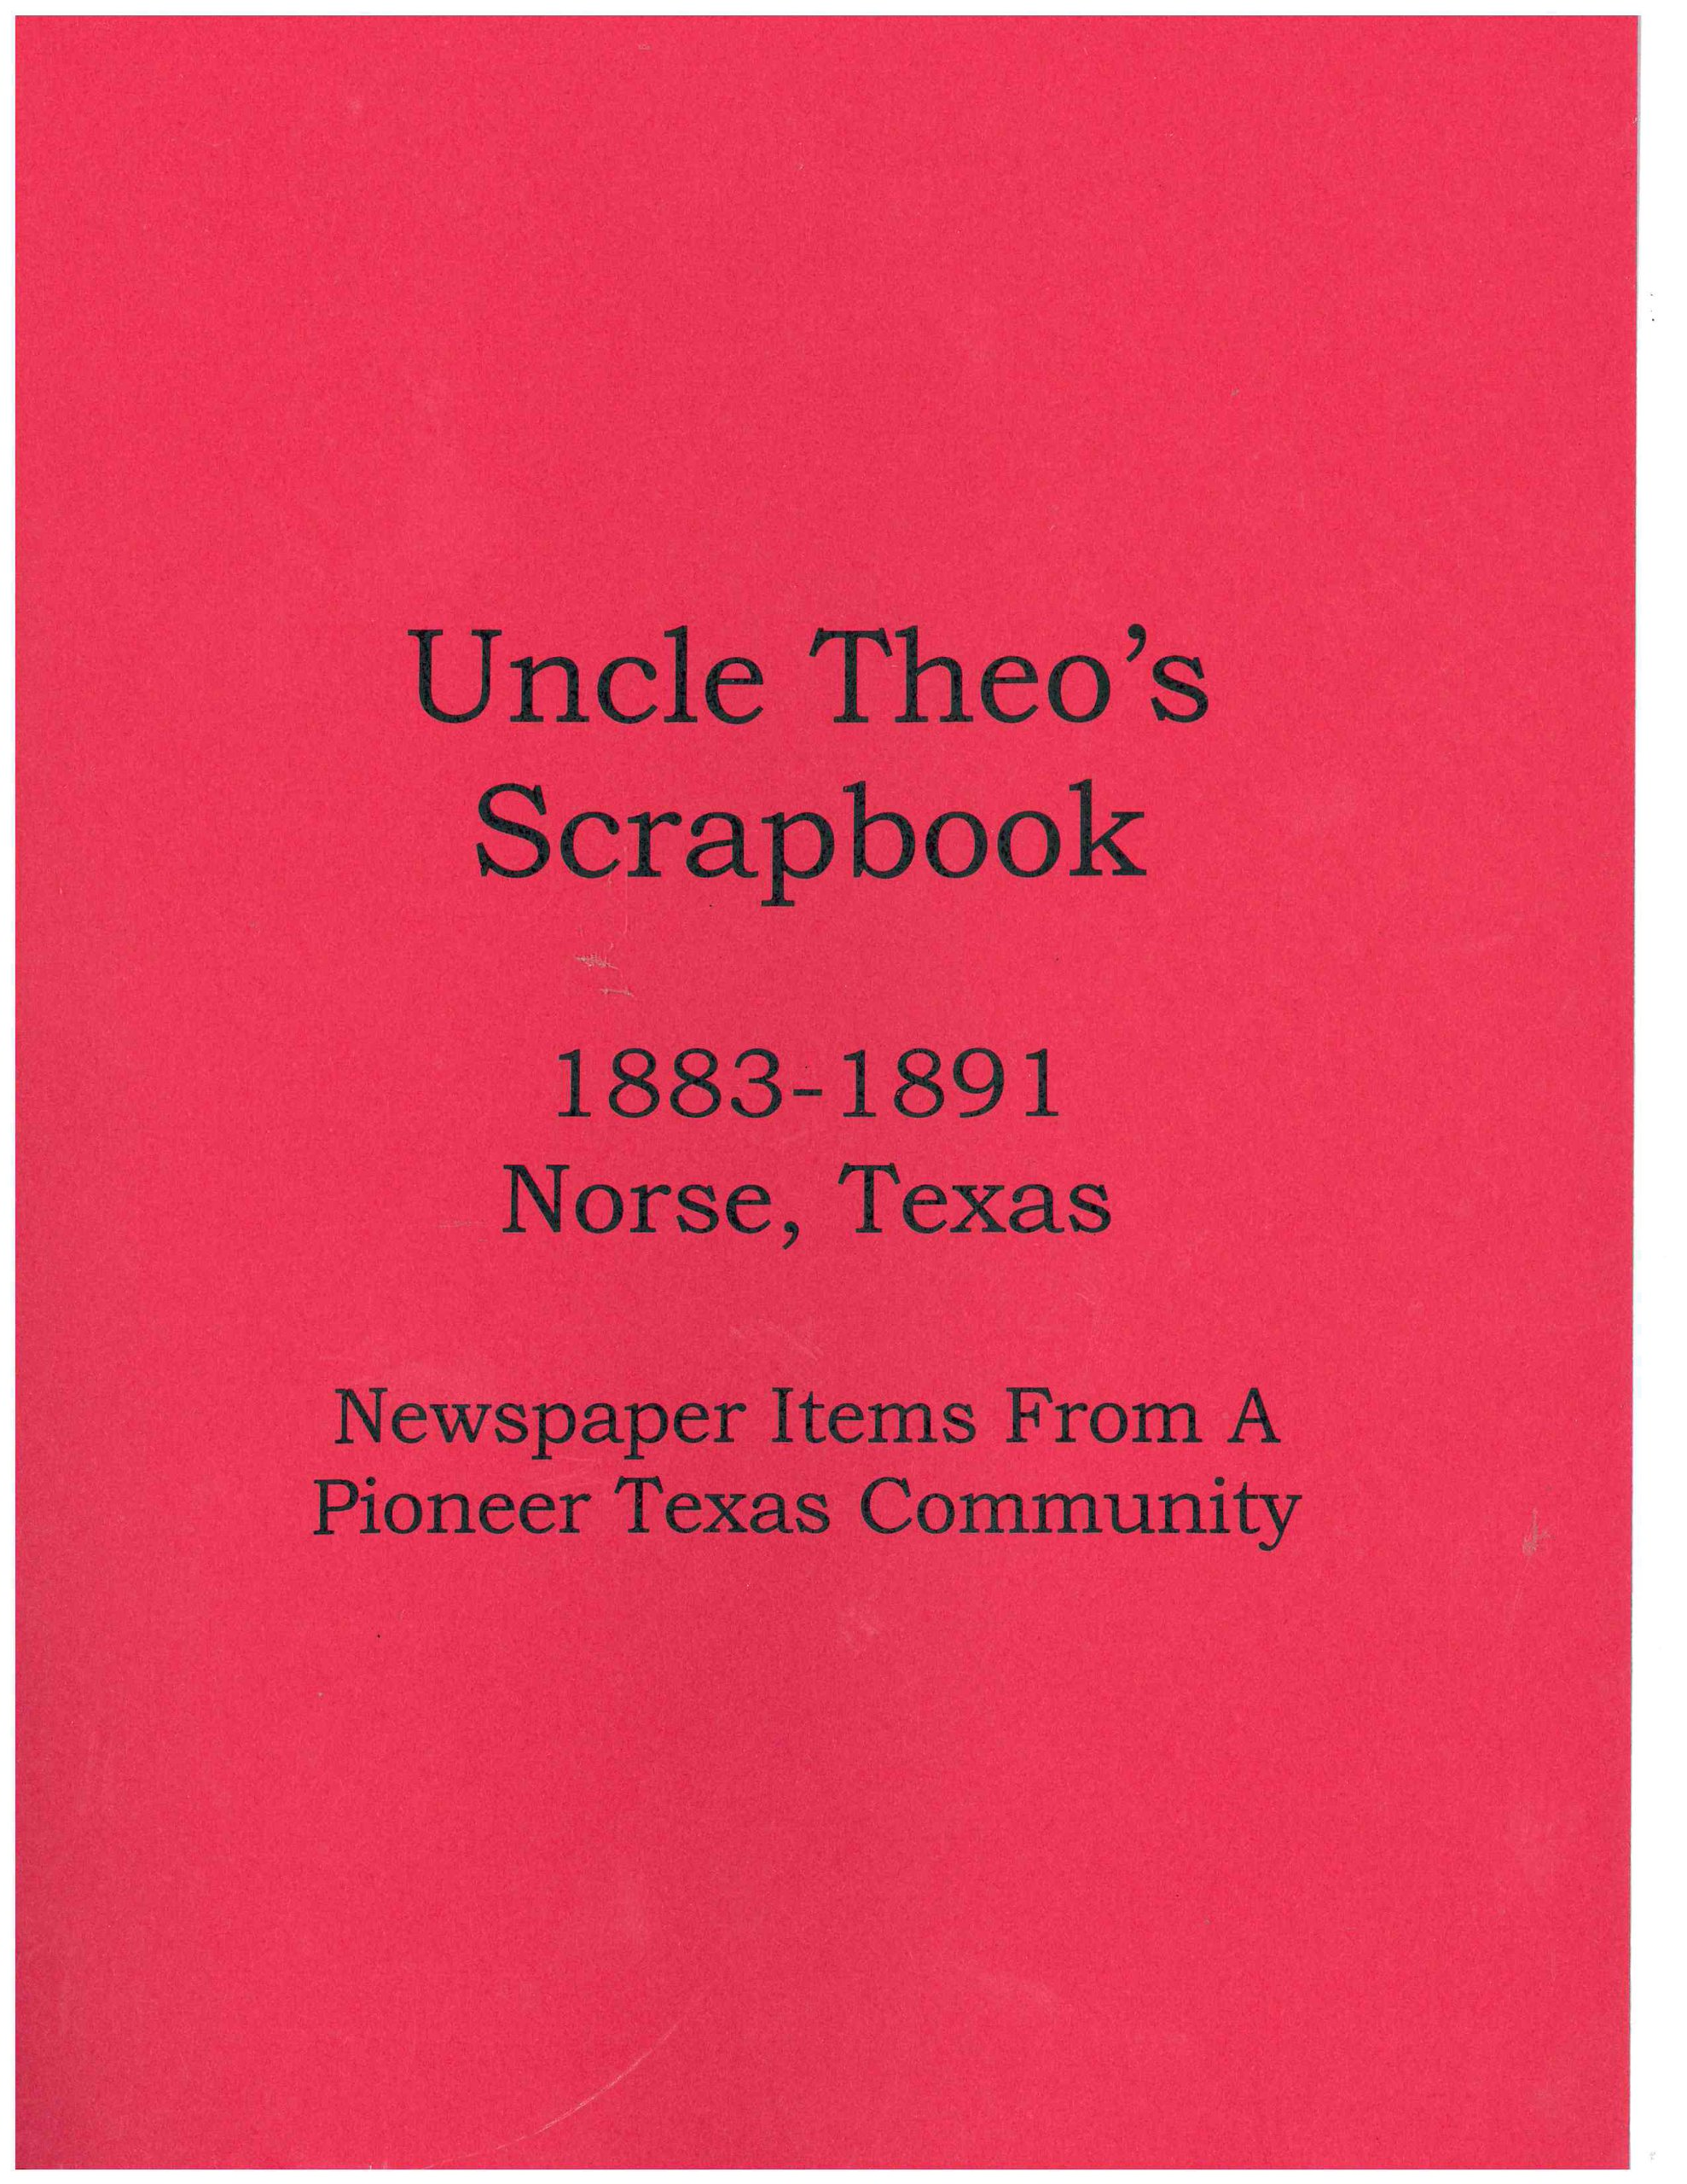 Download Uncle Theo's Scrapbook (Uncle Theo's Scrapbook, 1883-1891, Norse, TX; Newspaper Items from a Pioneer Texas Community) ePub fb2 ebook